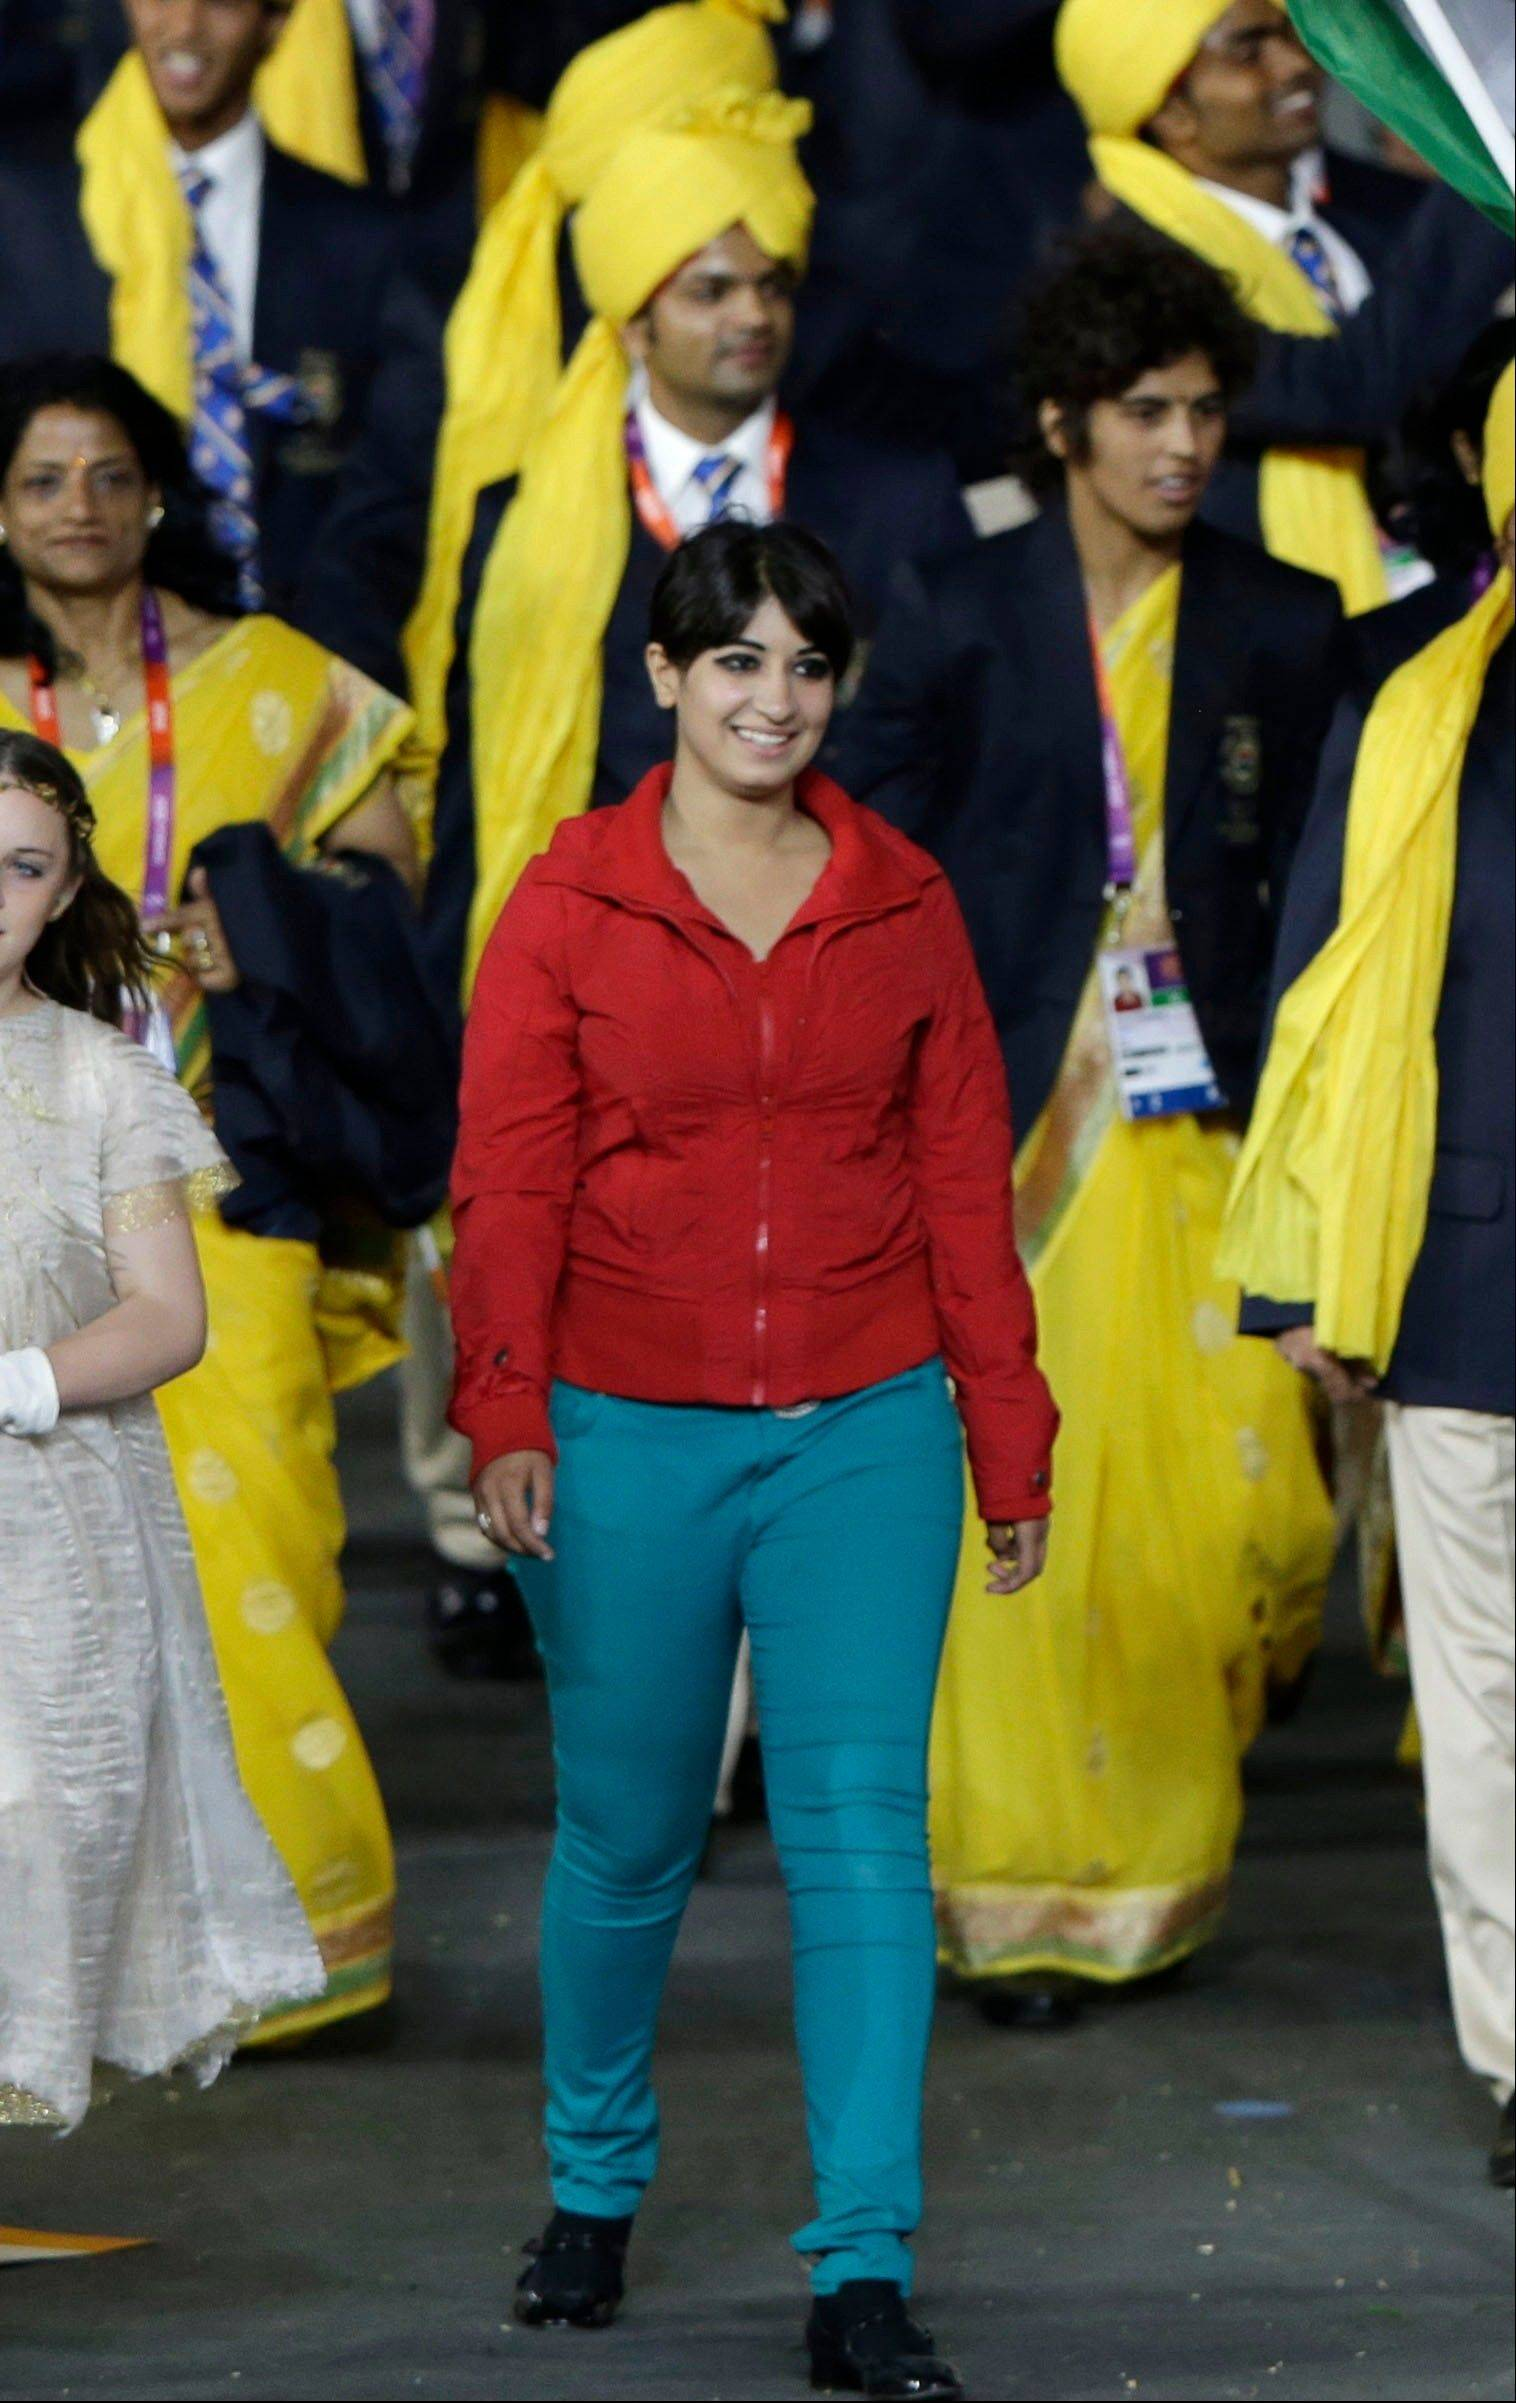 The Friday July 27, 2012 photo shows a cast member walking with the Indian team during the Opening Ceremony at the 2012 Summer Olympics, Friday, July 27, 2012, in London. The woman stood out during India�s walk through Olympic Stadium at the opening ceremony. That�s because she wasn�t supposed to be there. Friday night�s party crasher was not wearing the yellow and white dress that every other Indian woman was wearing in the group, yet still managed to situate herself next to flag bearer Sushil Kumar at the front of the line as they walked around the stadium.